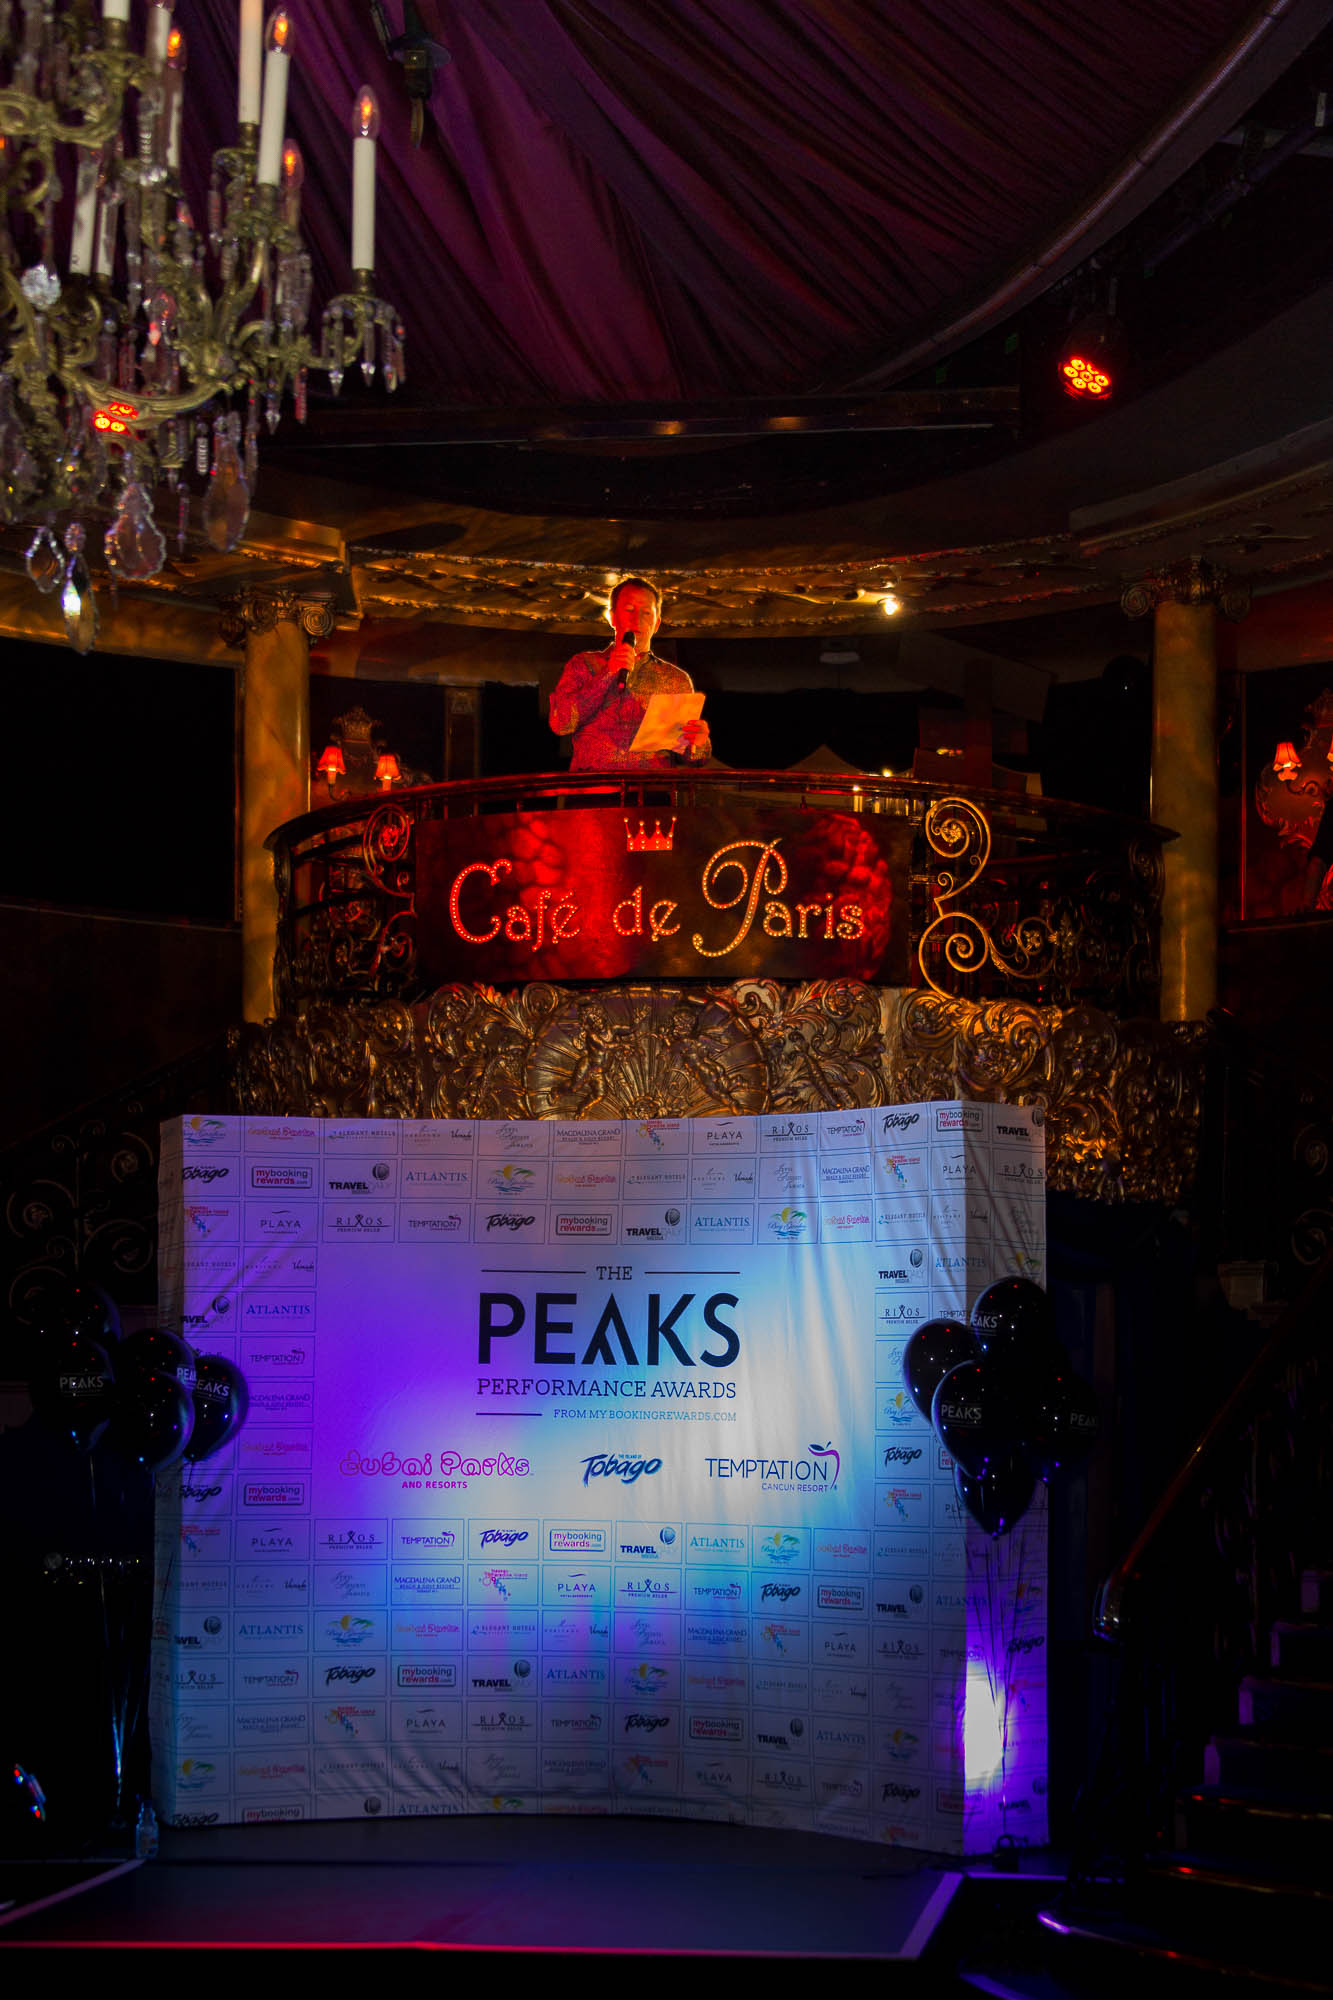 Peaks Performance Awards 2017 - London - image 3